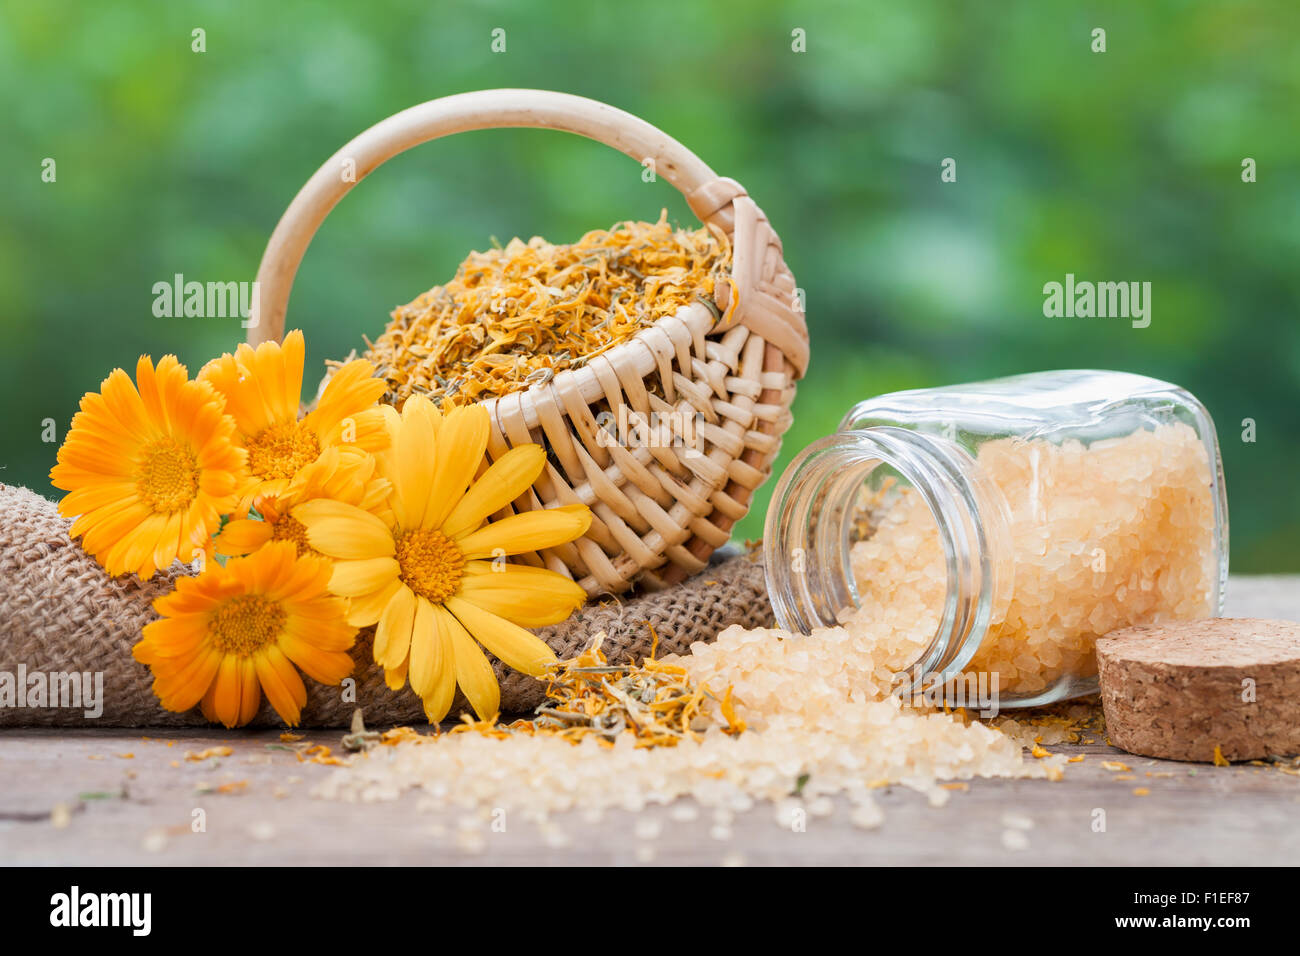 Marigold flowers, basket with dried plants and bottles of sea salt. - Stock Image